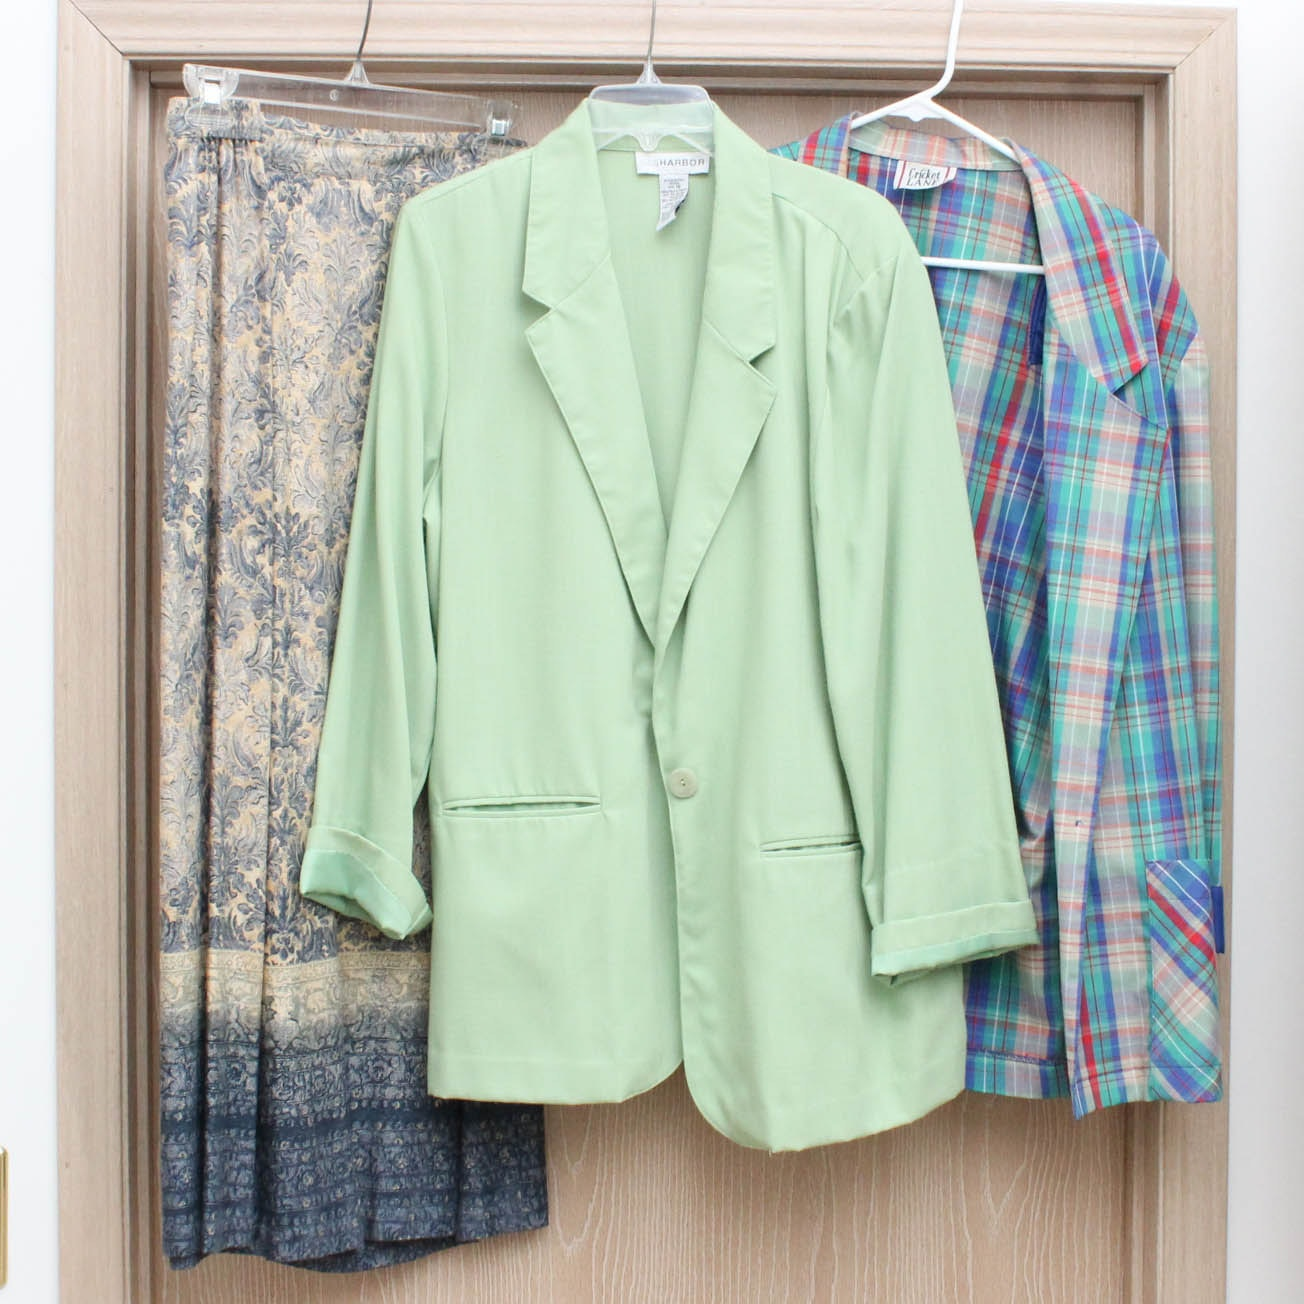 Selection of Women's Clothing Including Talbots, Sag Harbor, Alfred Dunner